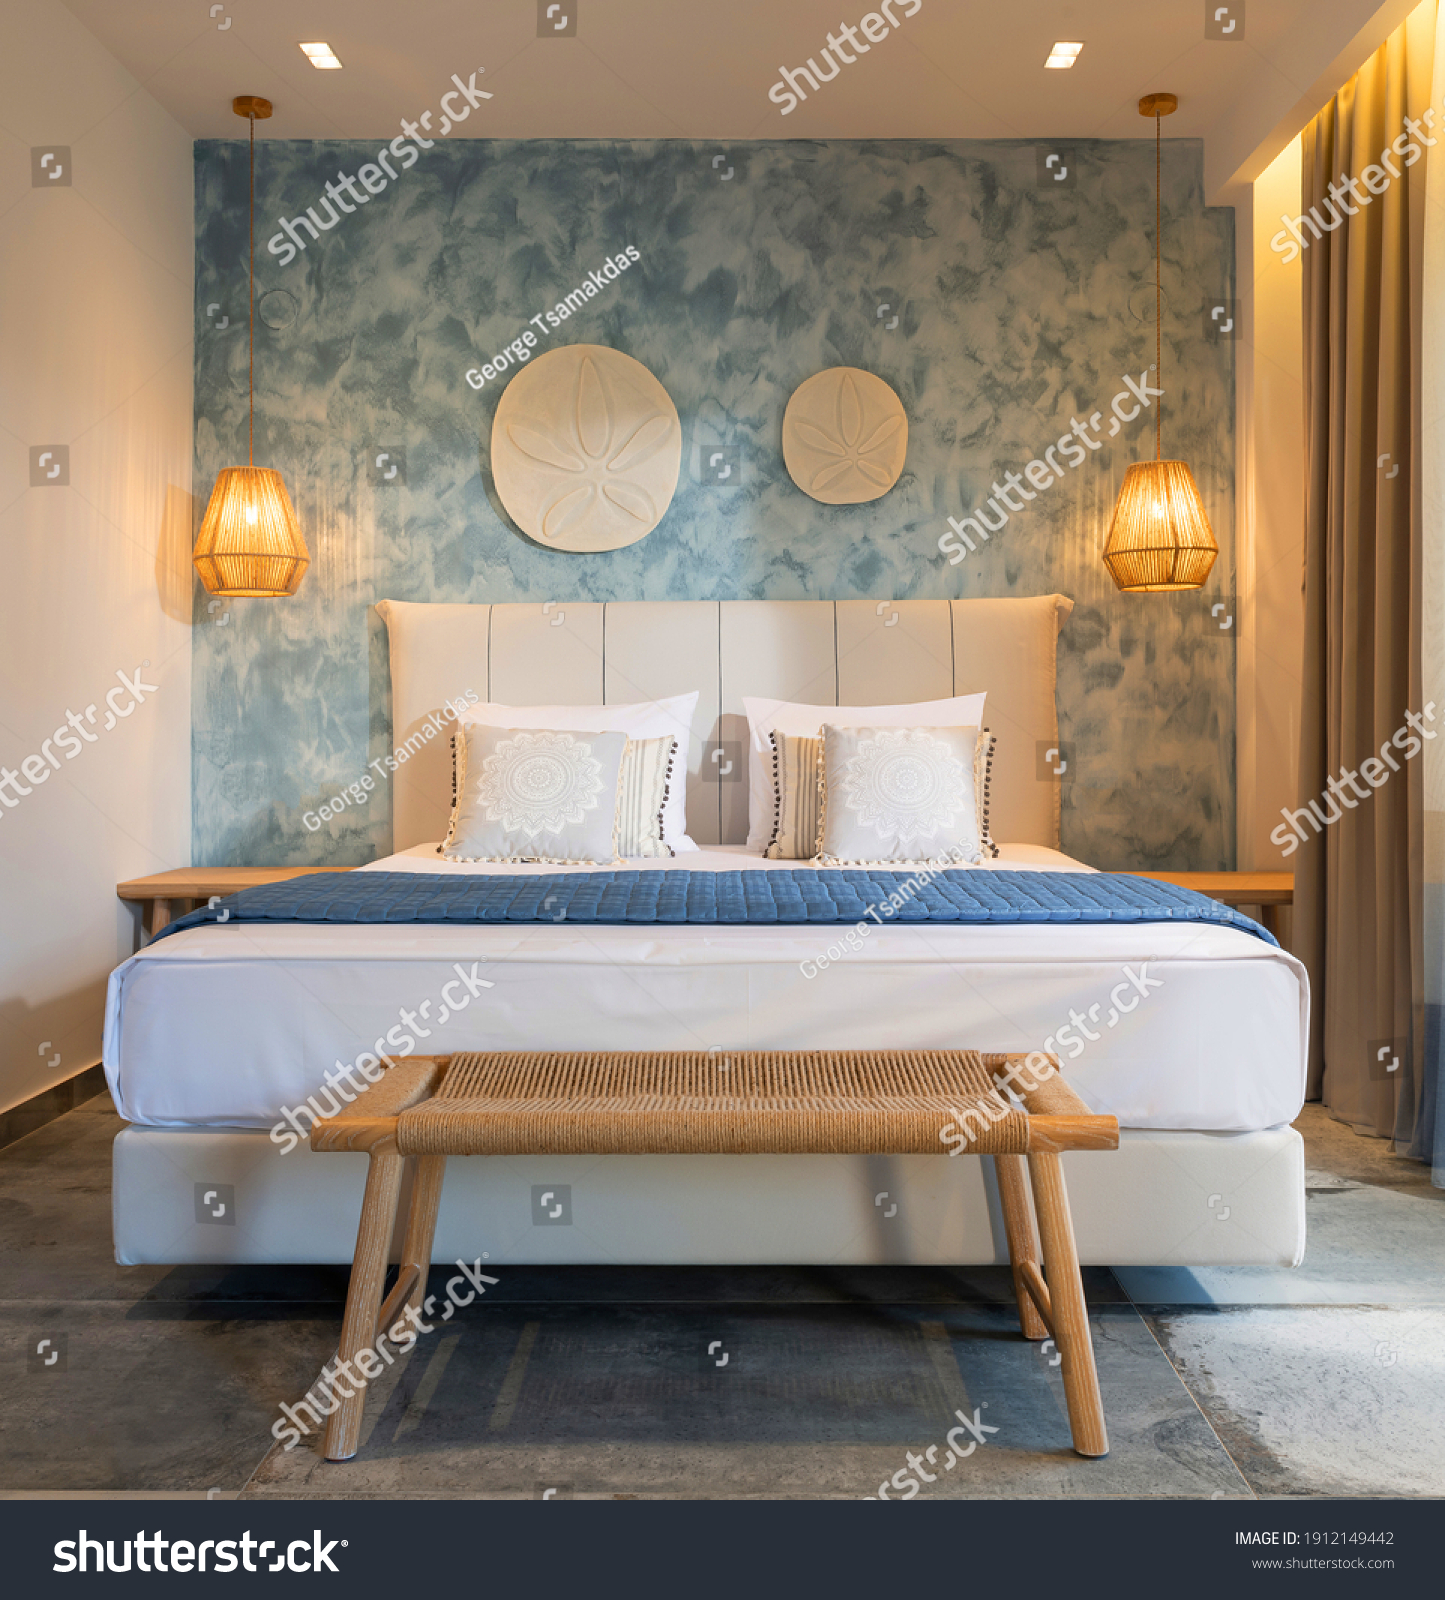 Front view of modern bedroom interior in nautical marine style with blue decorative stucco wall, wicker furniture, ceiling wooden lamps, white soft bed #1912149442